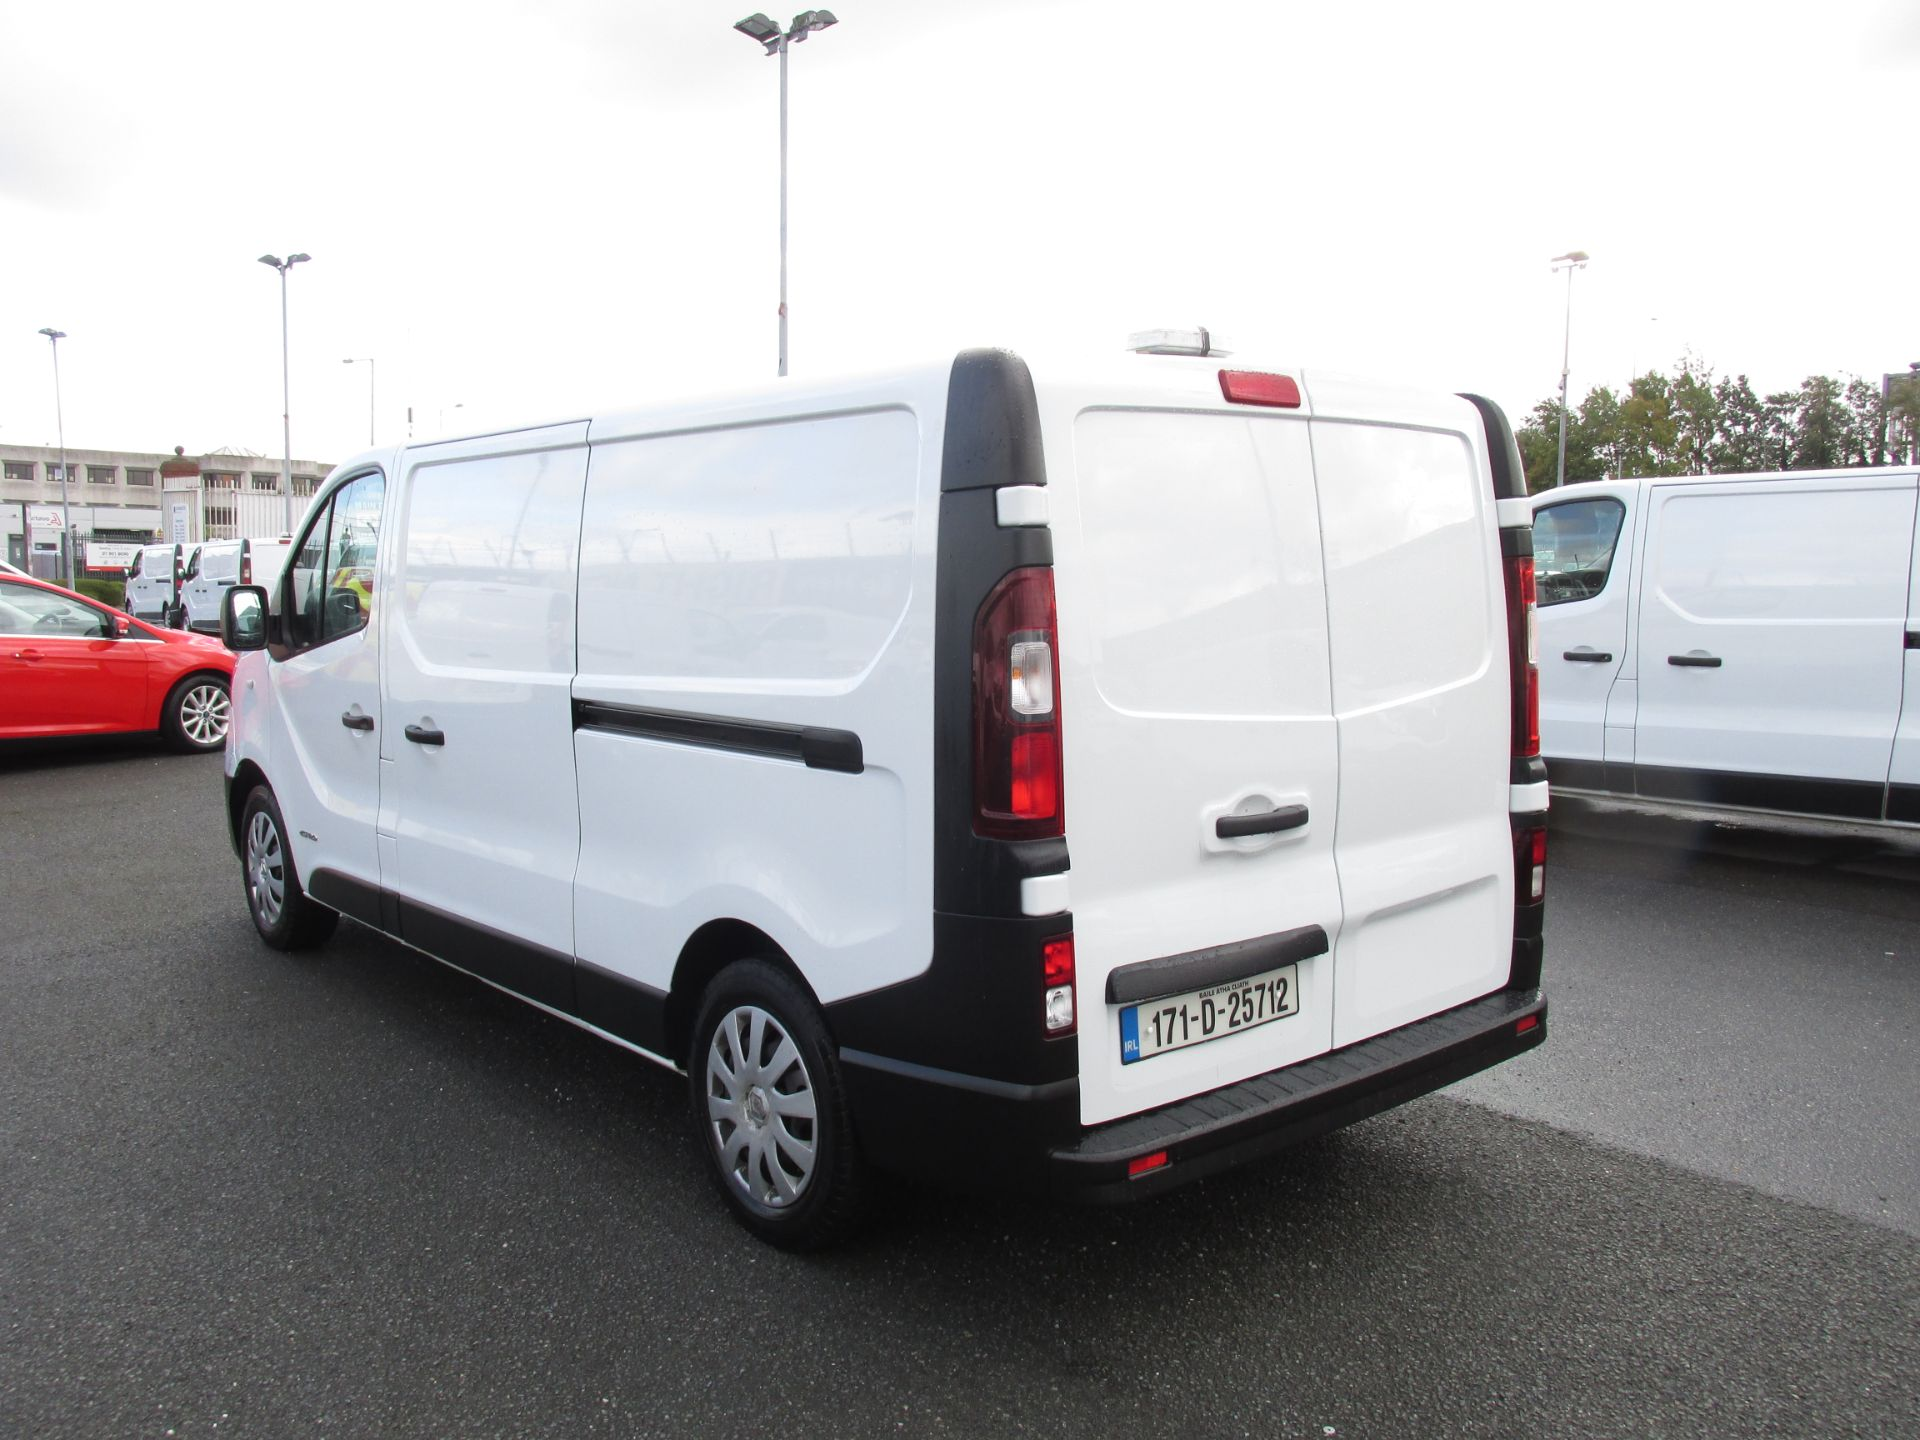 2017 Renault Trafic LL29 DCI 120 Business 3DR (171D25712) Image 5